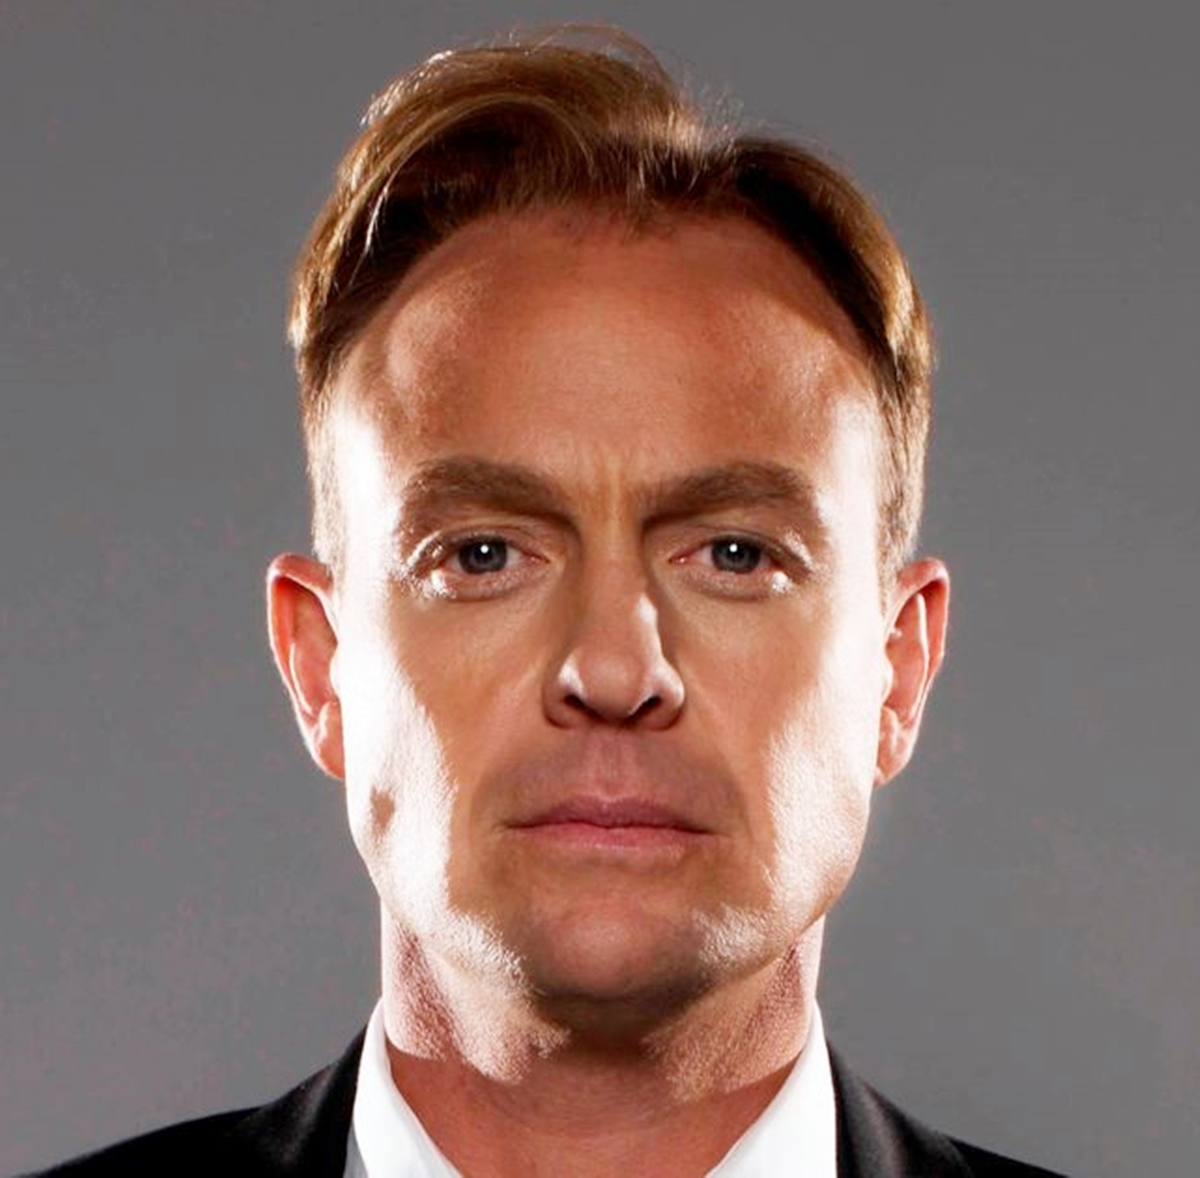 7 38 10 Things You Probably Didn't Know About Jason Donovan